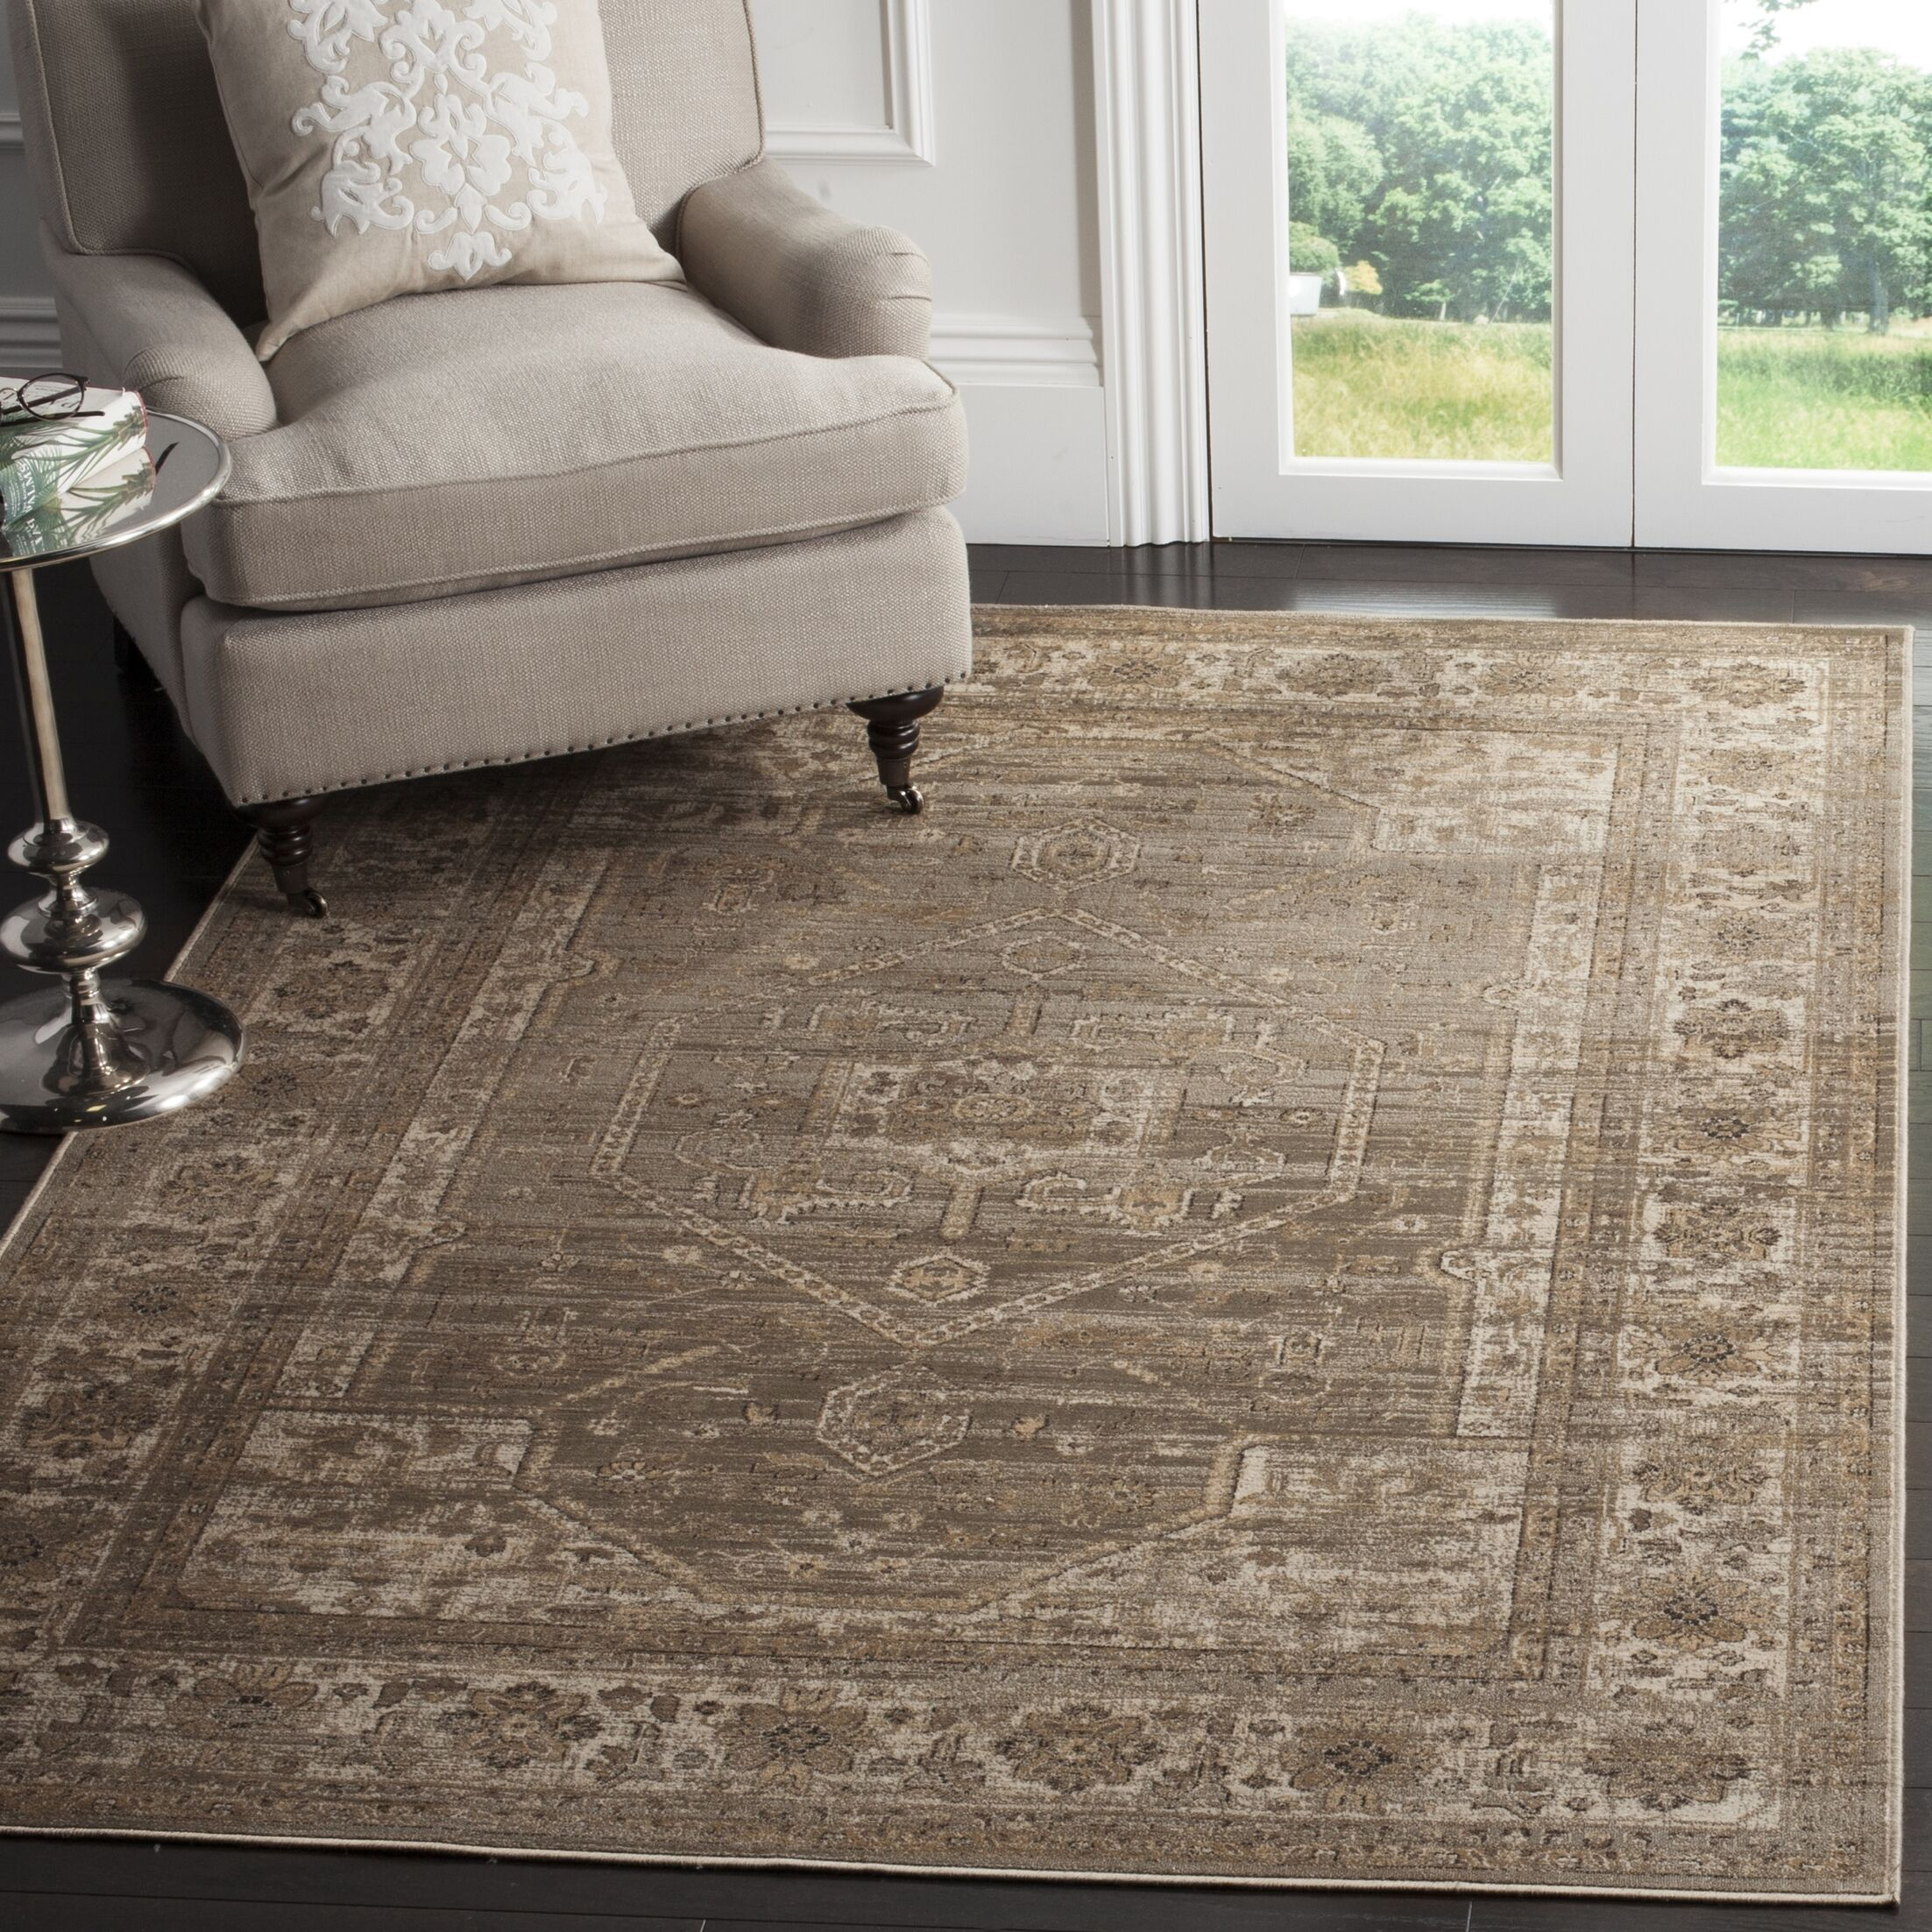 Ercole Mouse Wool Area Rug Rug Size: Rectangle 6'7